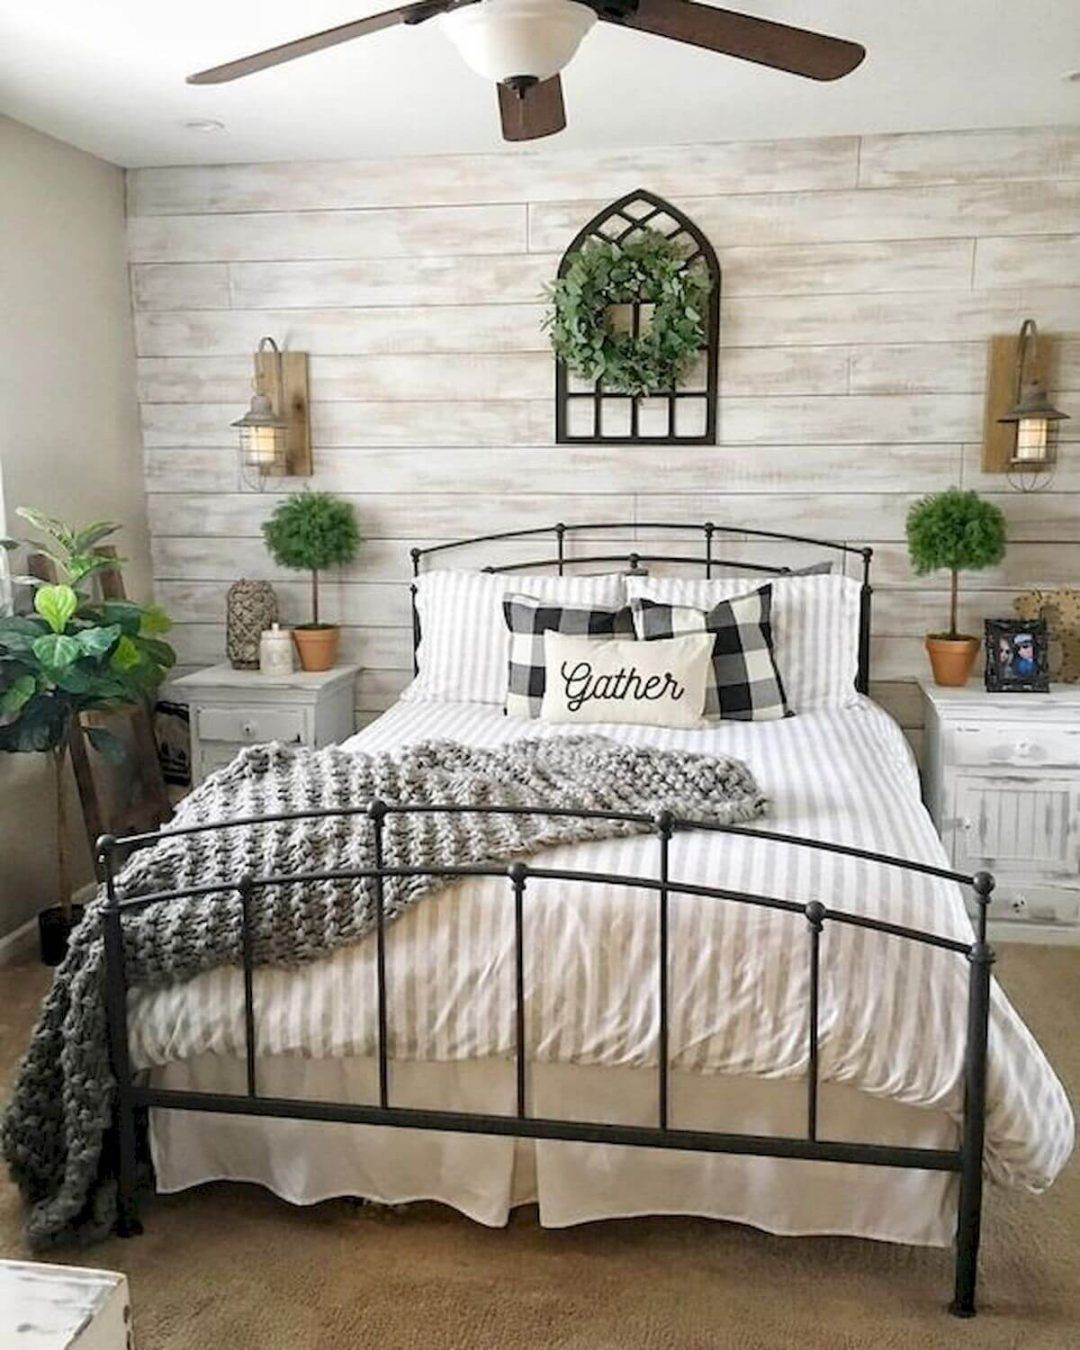 25 Absorbing Rustic Bedroom Concepts (Passions For Sleeping) - 22A